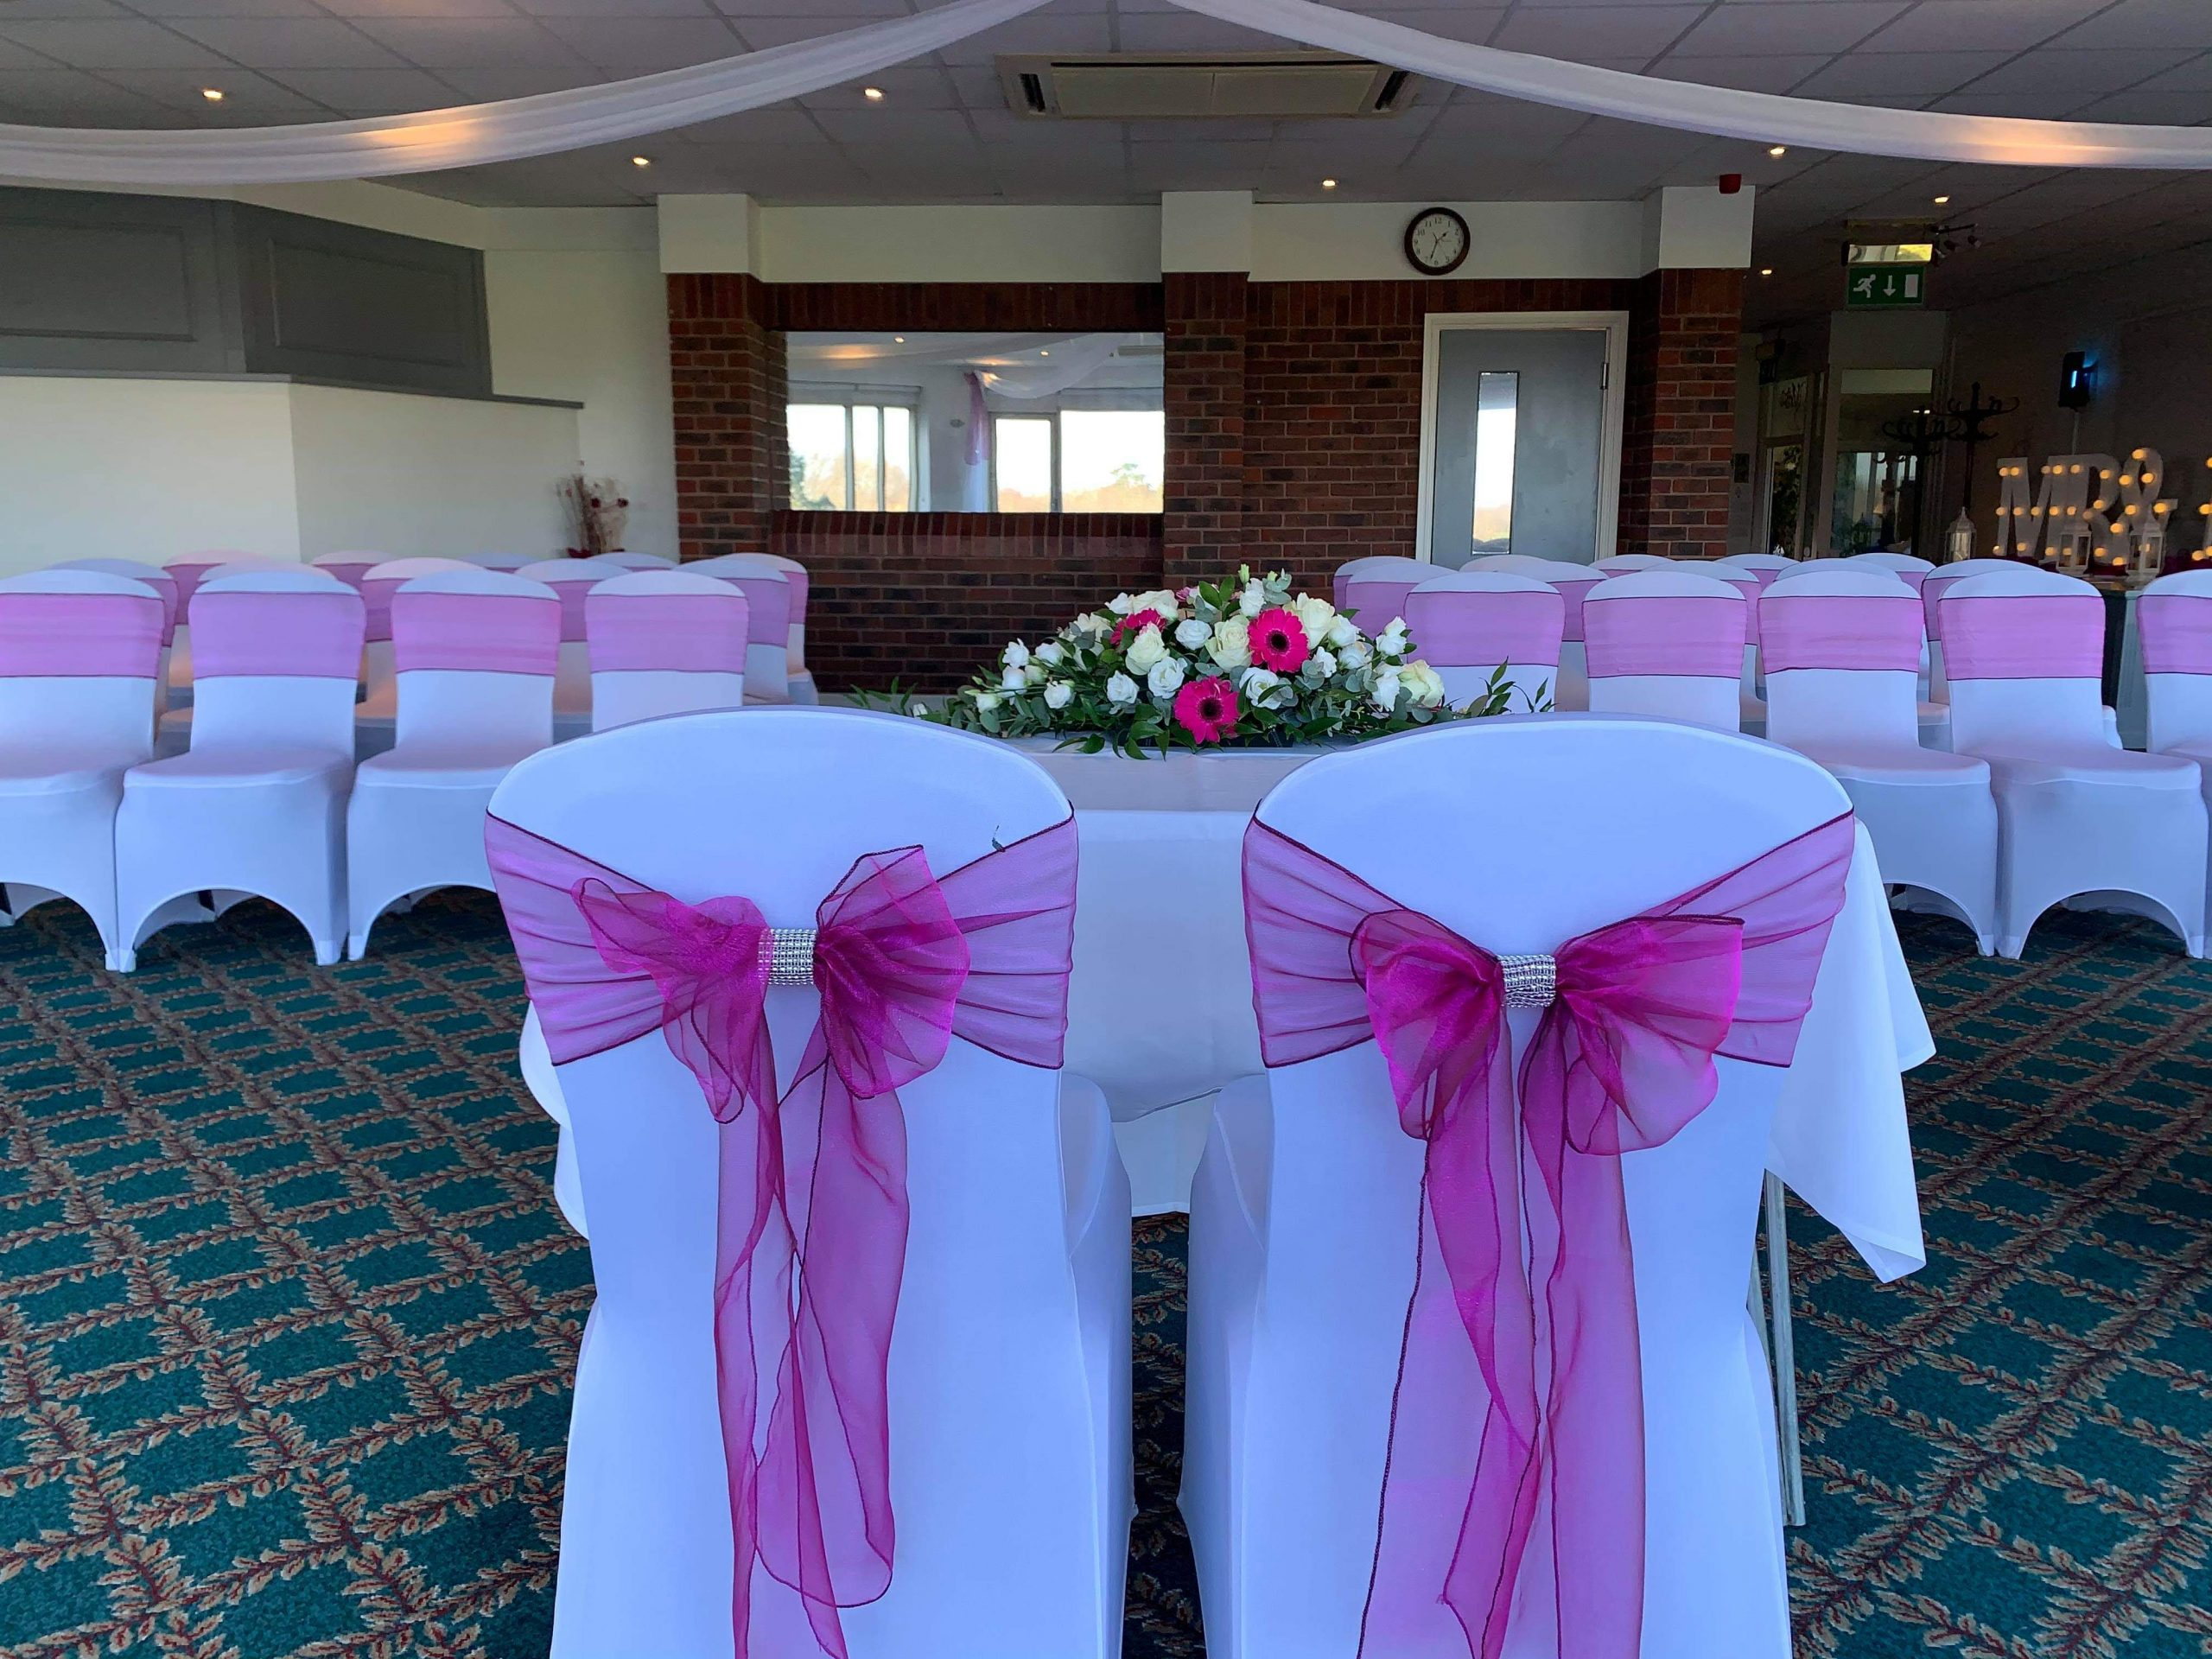 Pink sashes with Bling and Matching Long and Low